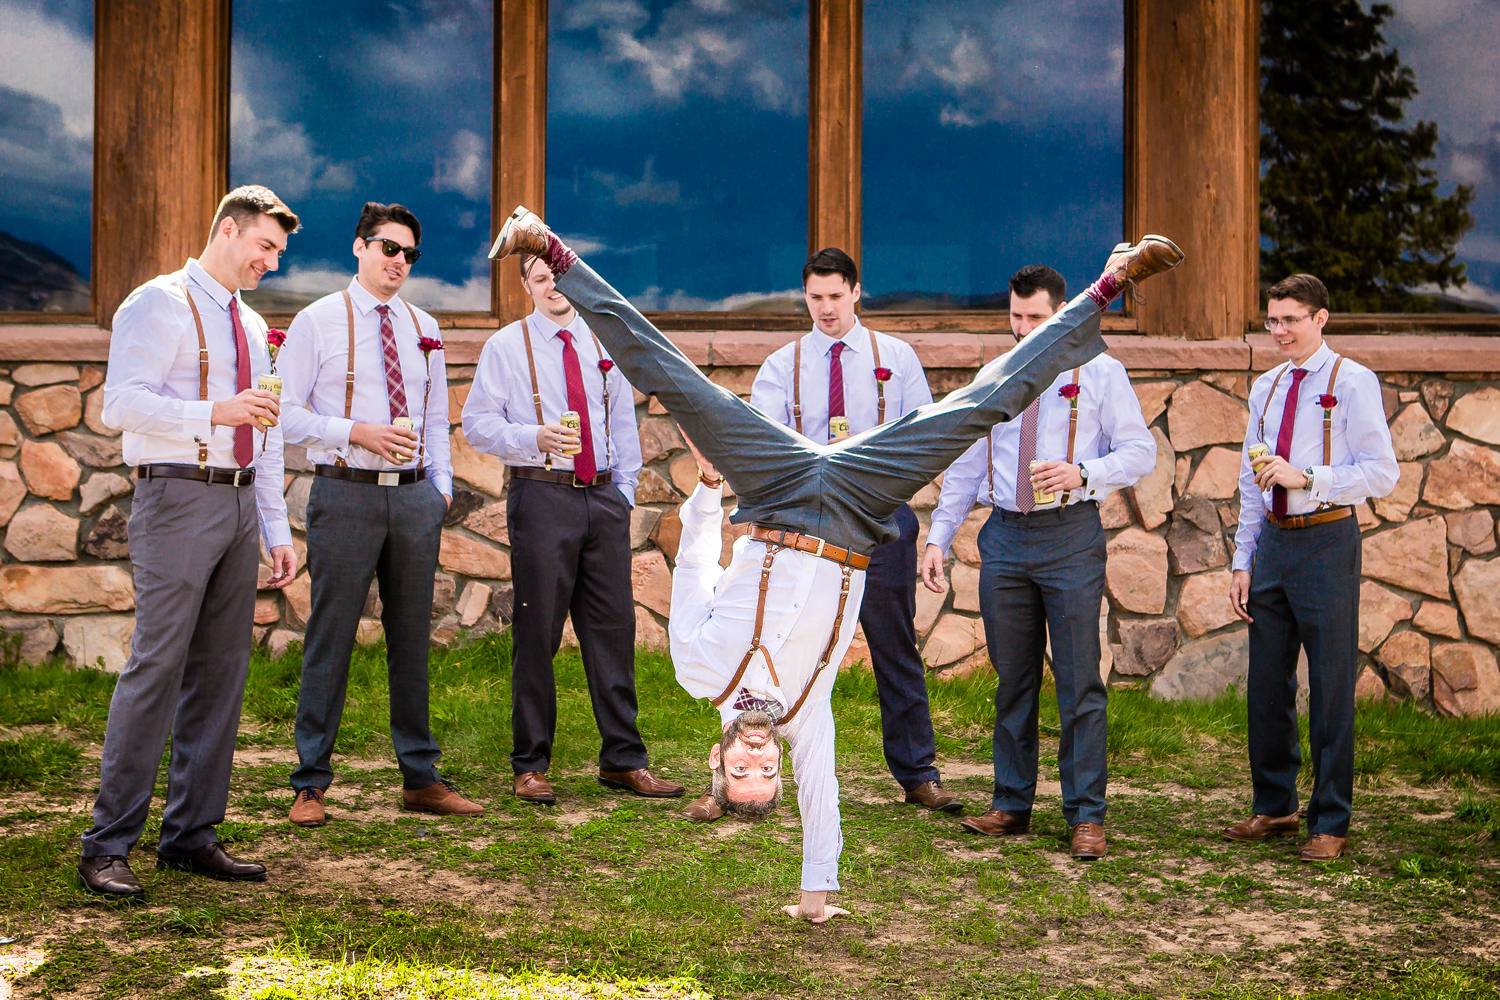 Winterpark summer wedding by Colorado's best, JMGant Photography